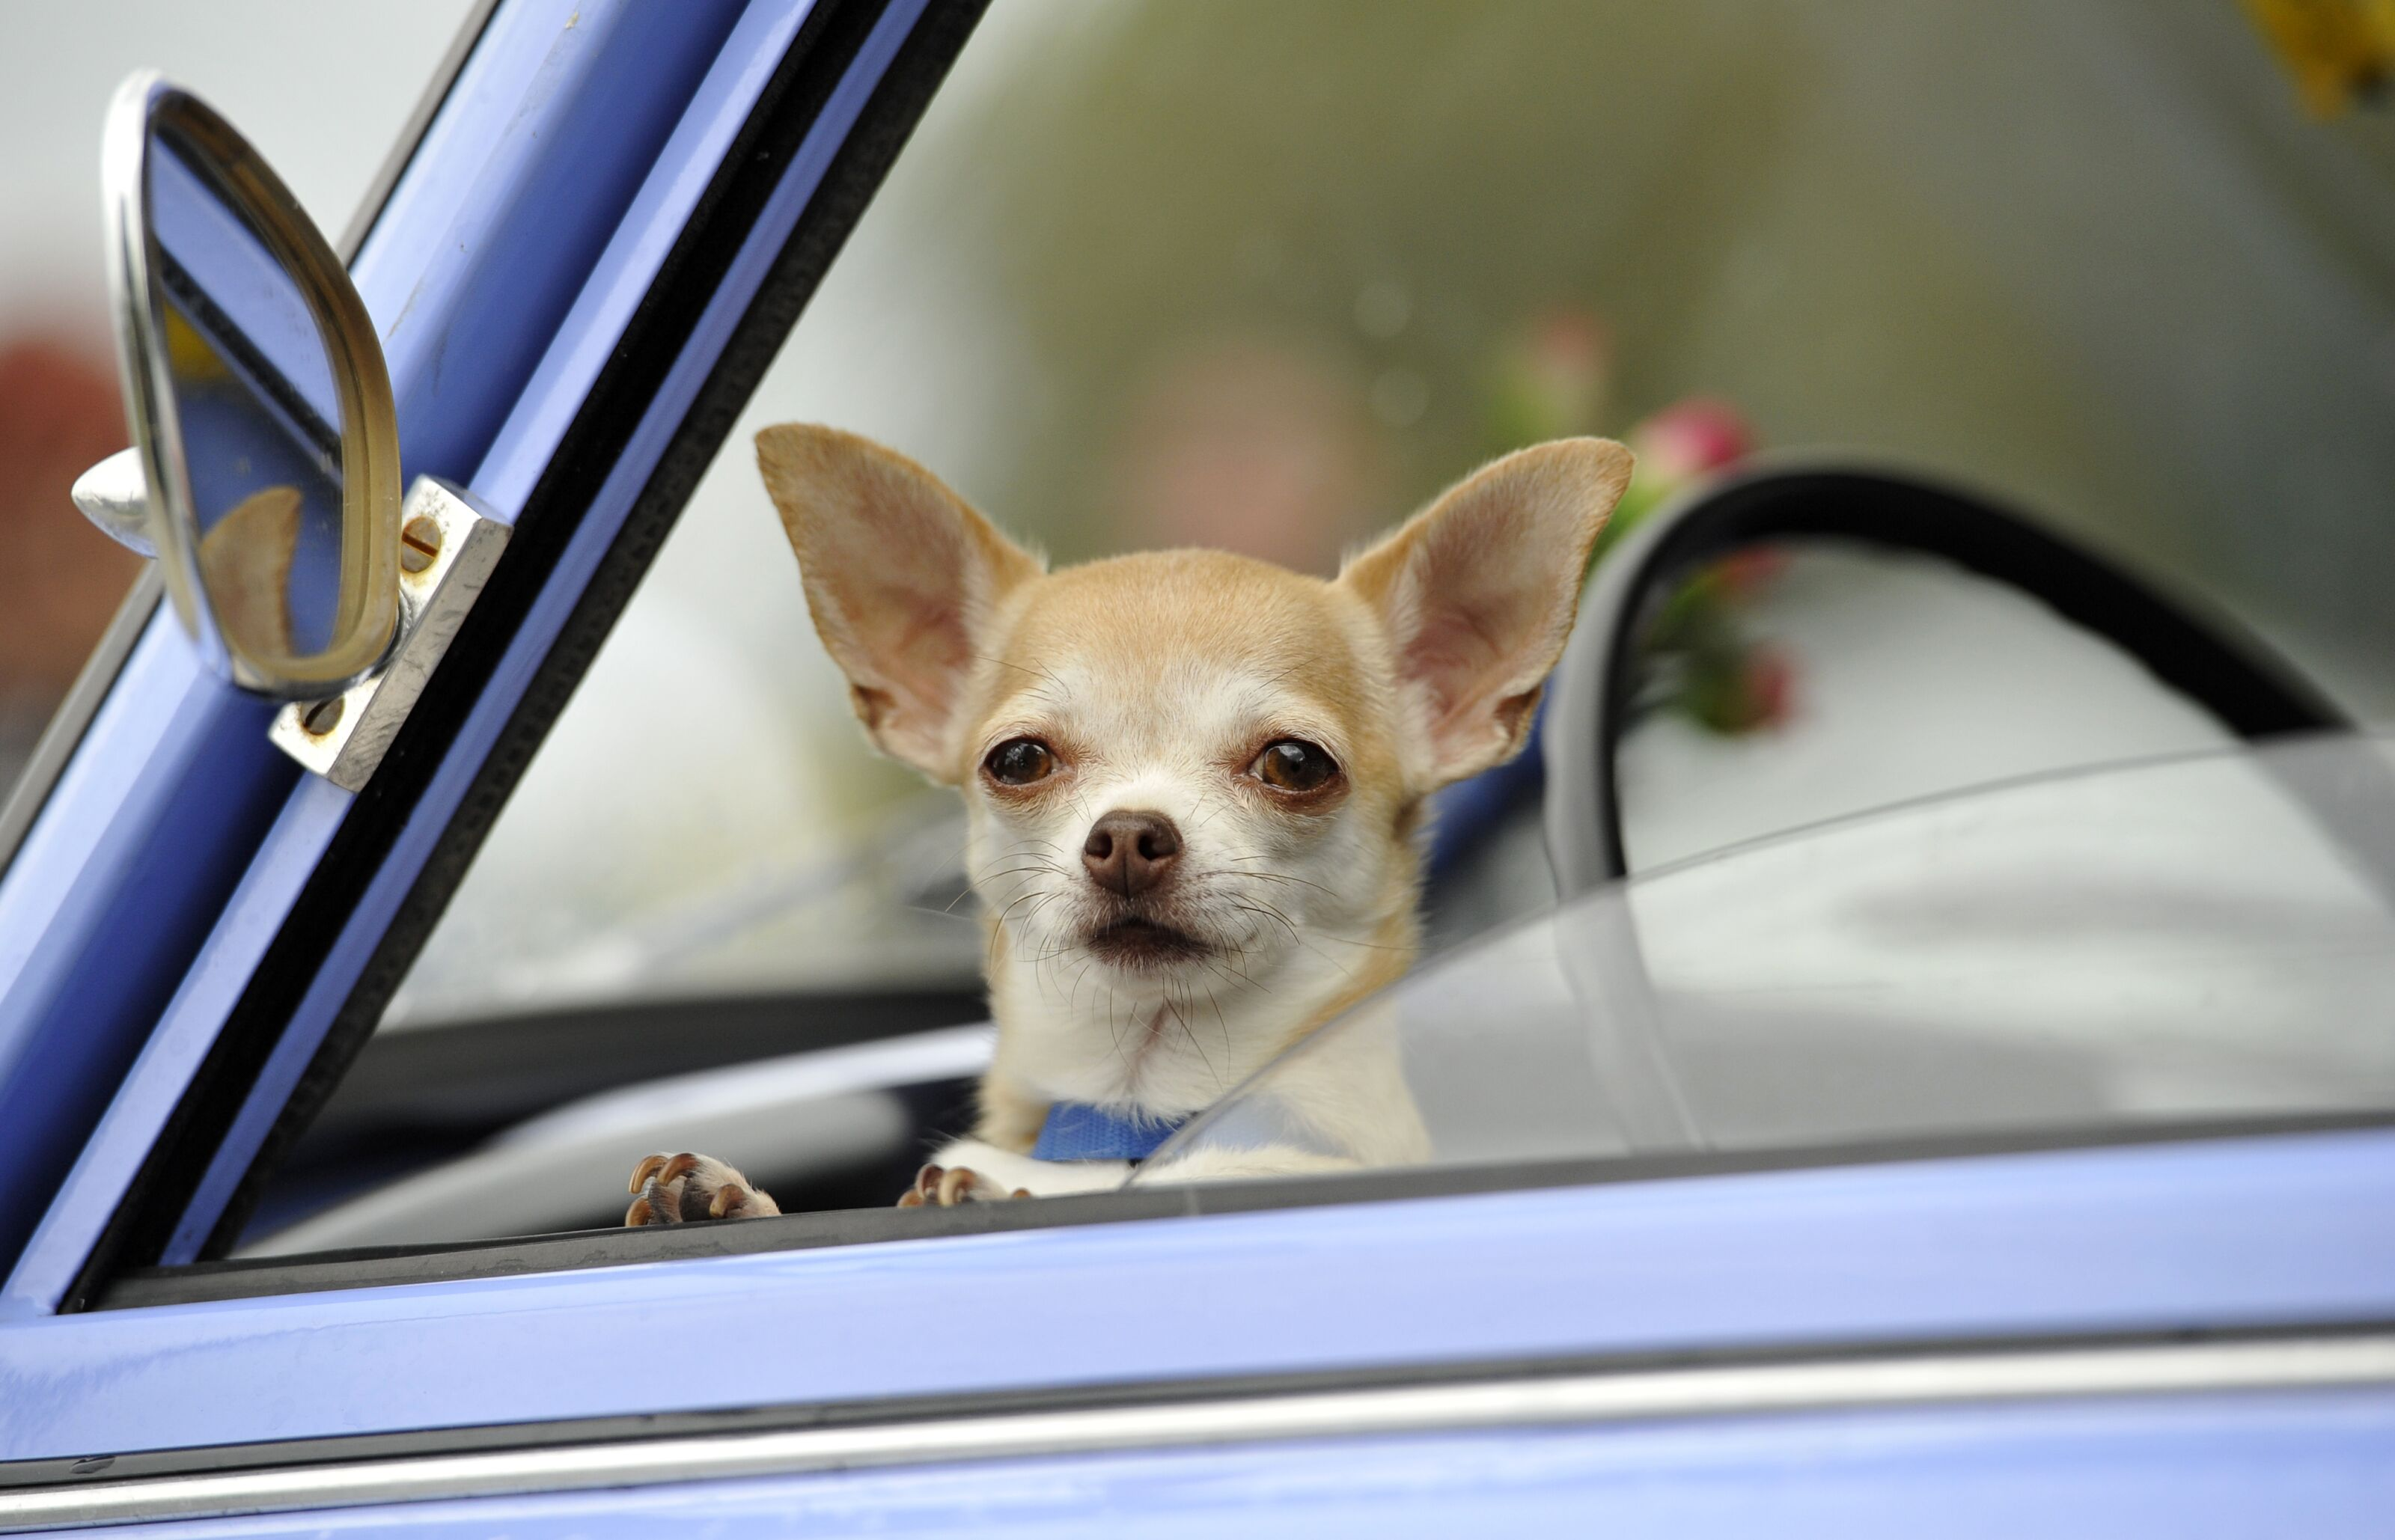 PetSmart is celebrating the Chihuahua on August 22